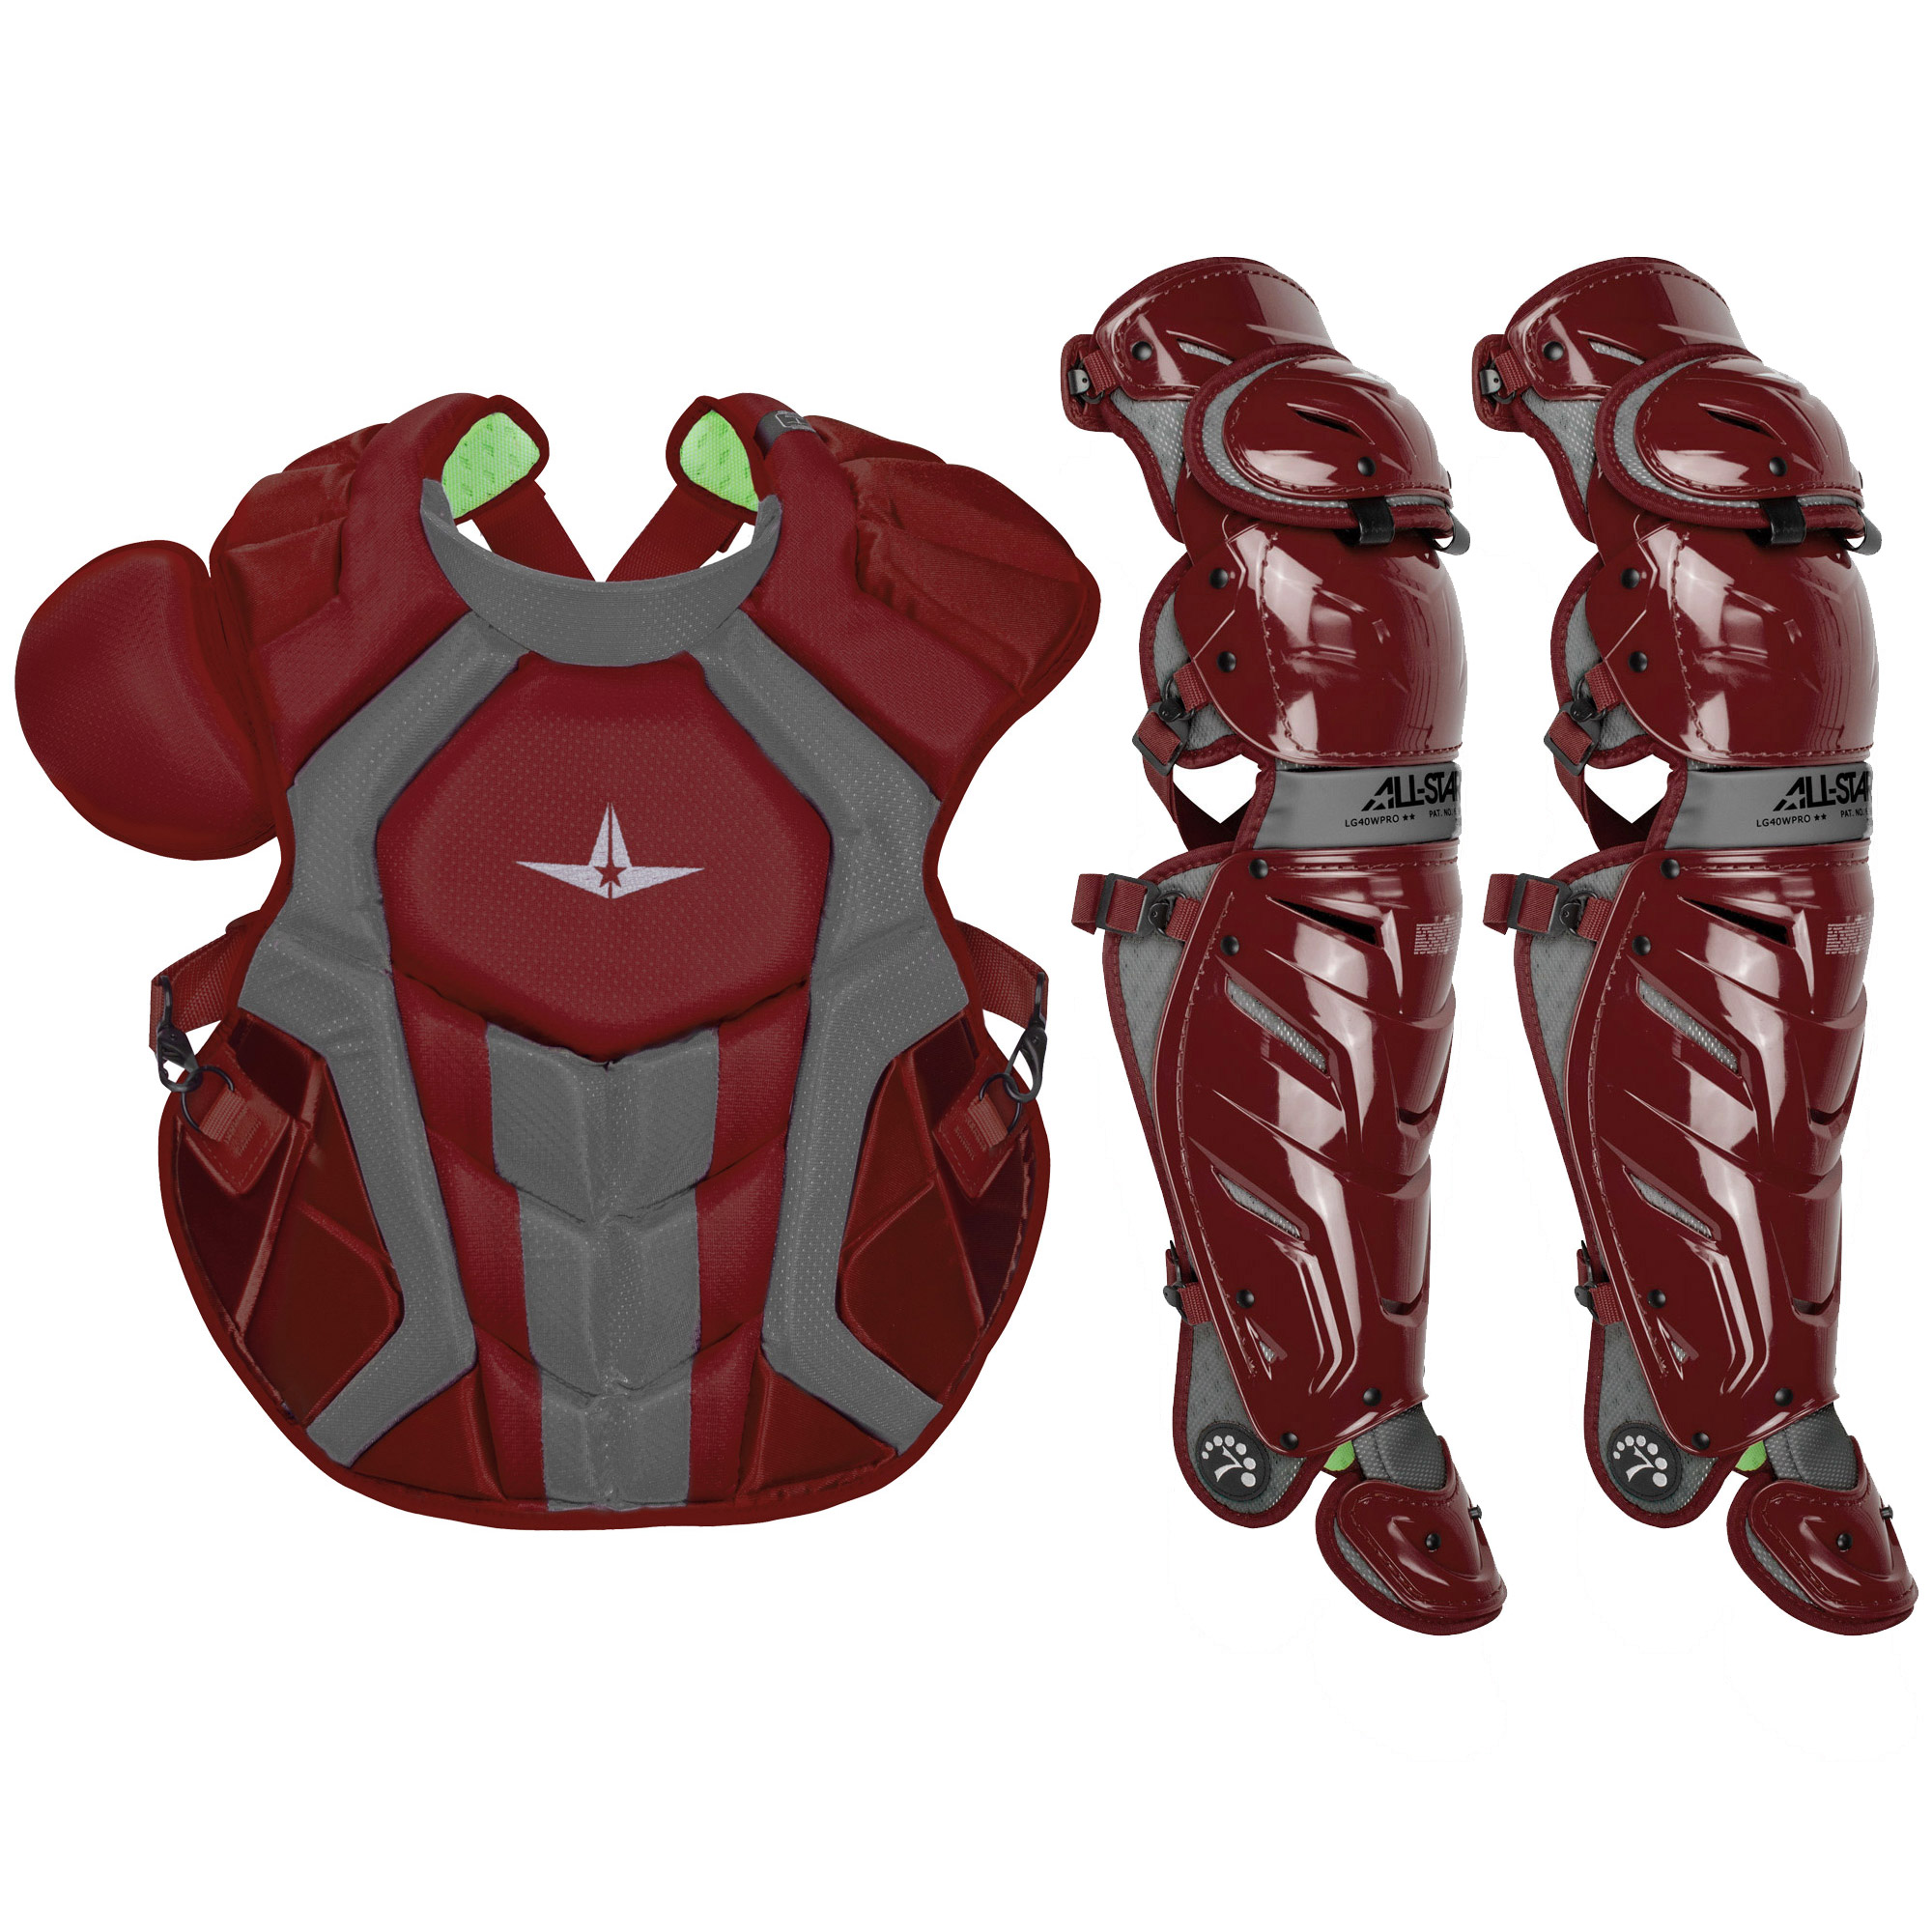 All-Star System7 Axis NOCSAE Adult Baseball Catcher's Gear Set